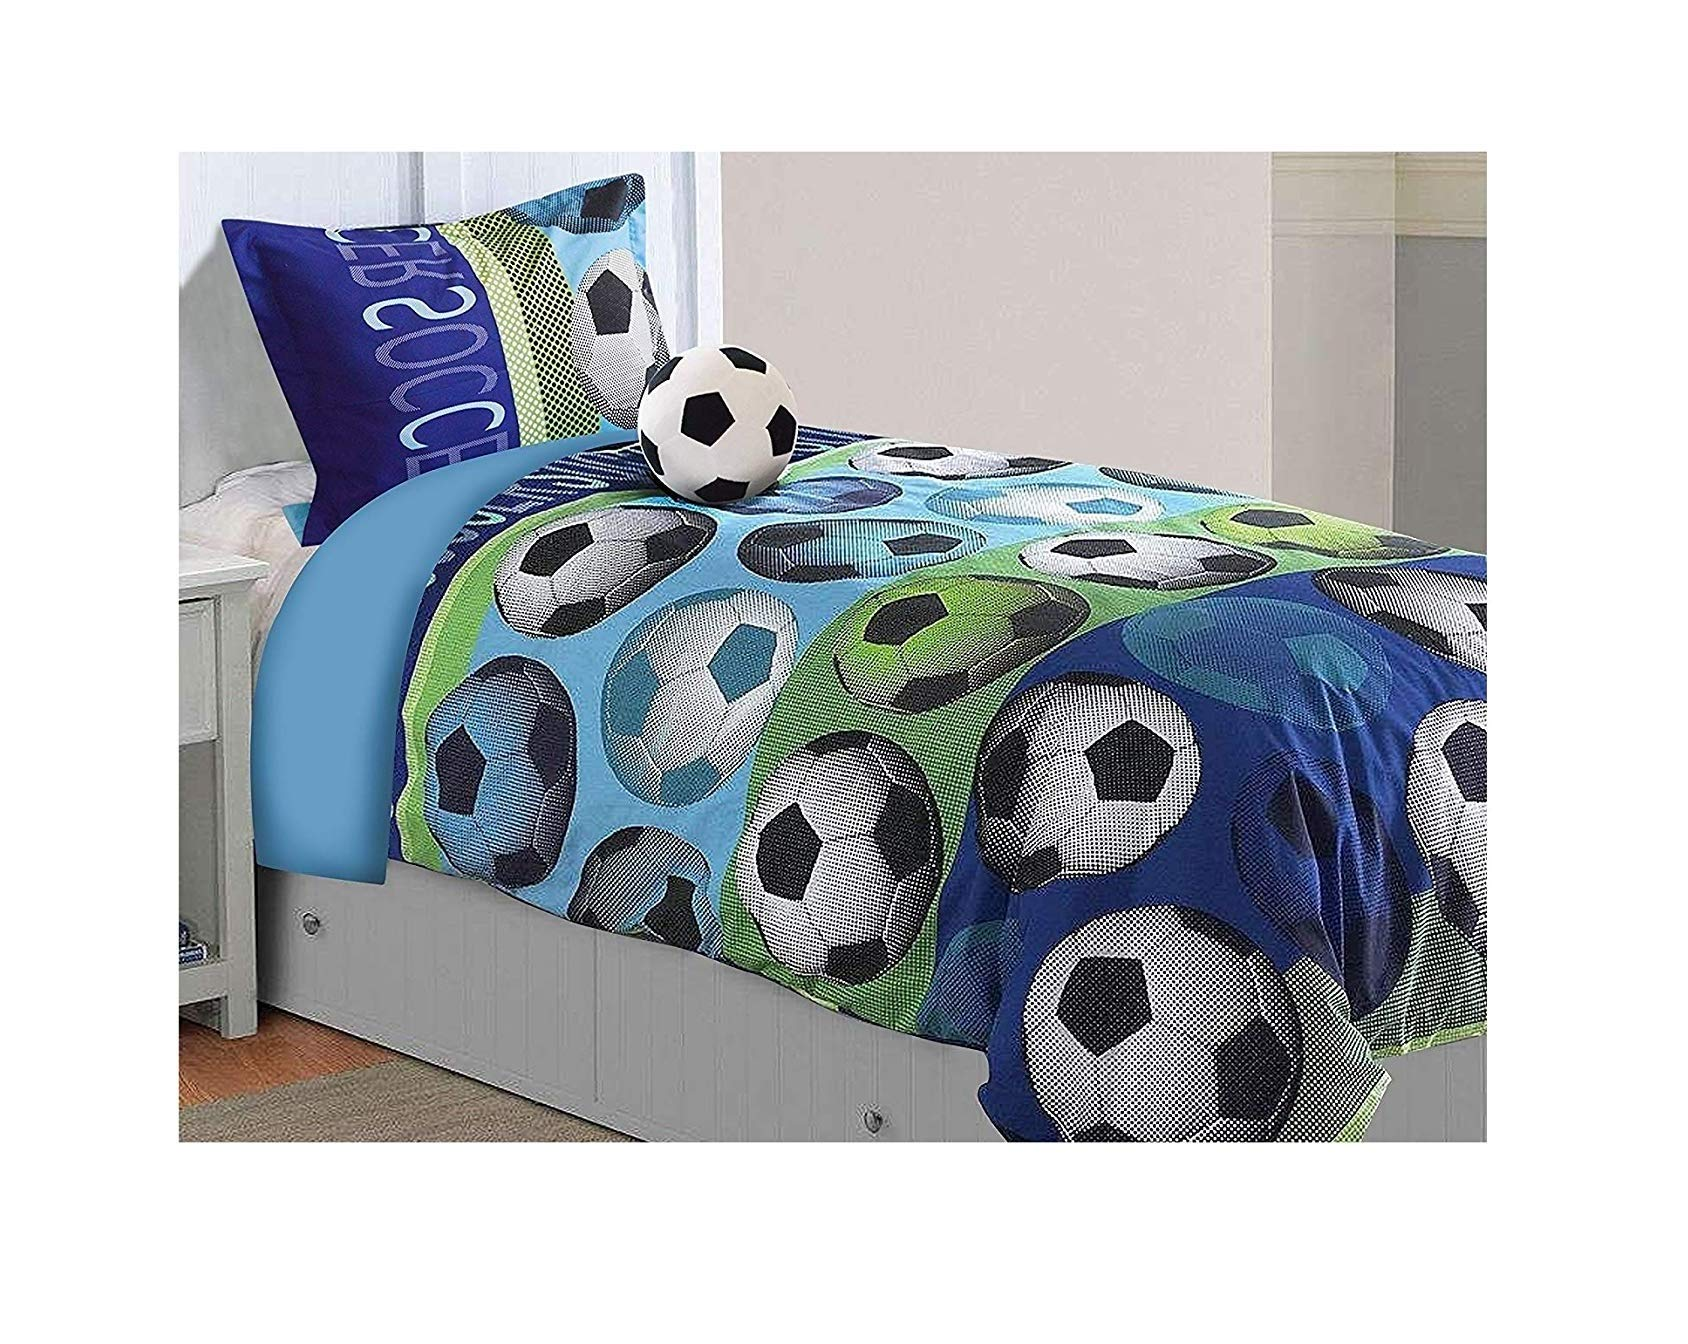 All American Collection 3 Piece Twin Size Soccer Comforter Set with Furry Friend Included, Matching Sheets and Curtain Available (3PC COMFORTER SET ONLY)